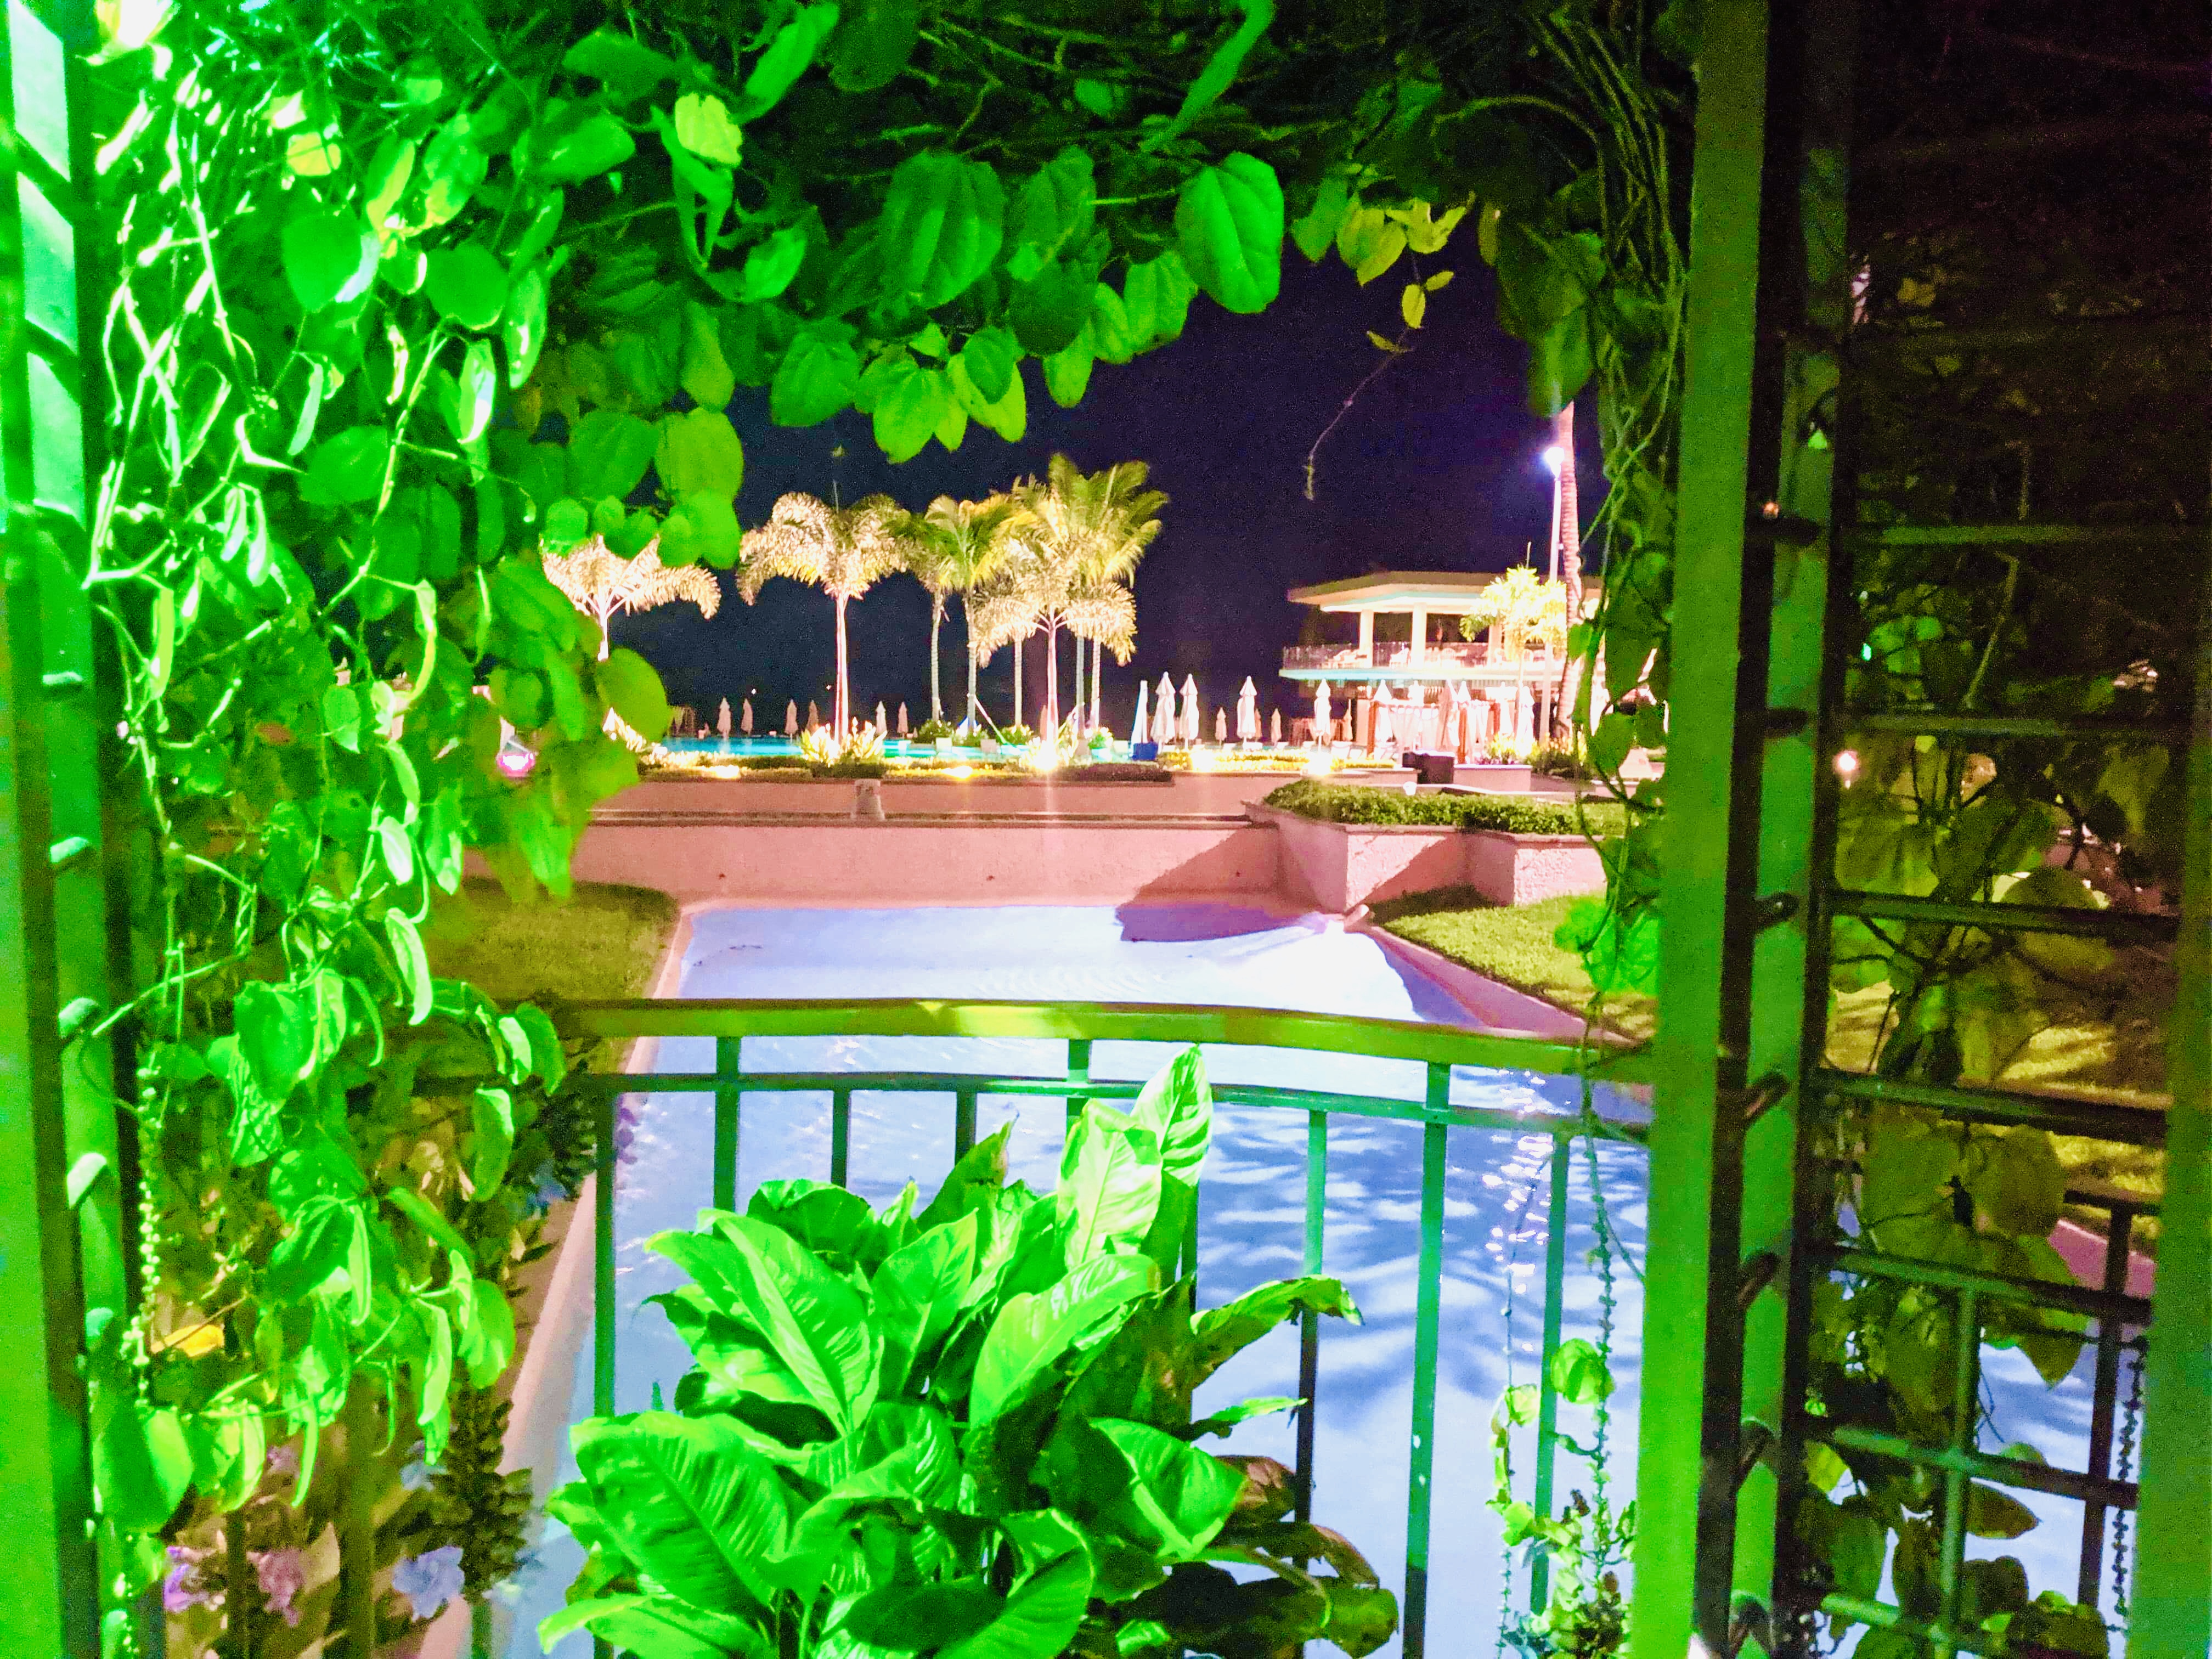 View of the pool area at night, from inside a viewing area covered in plants